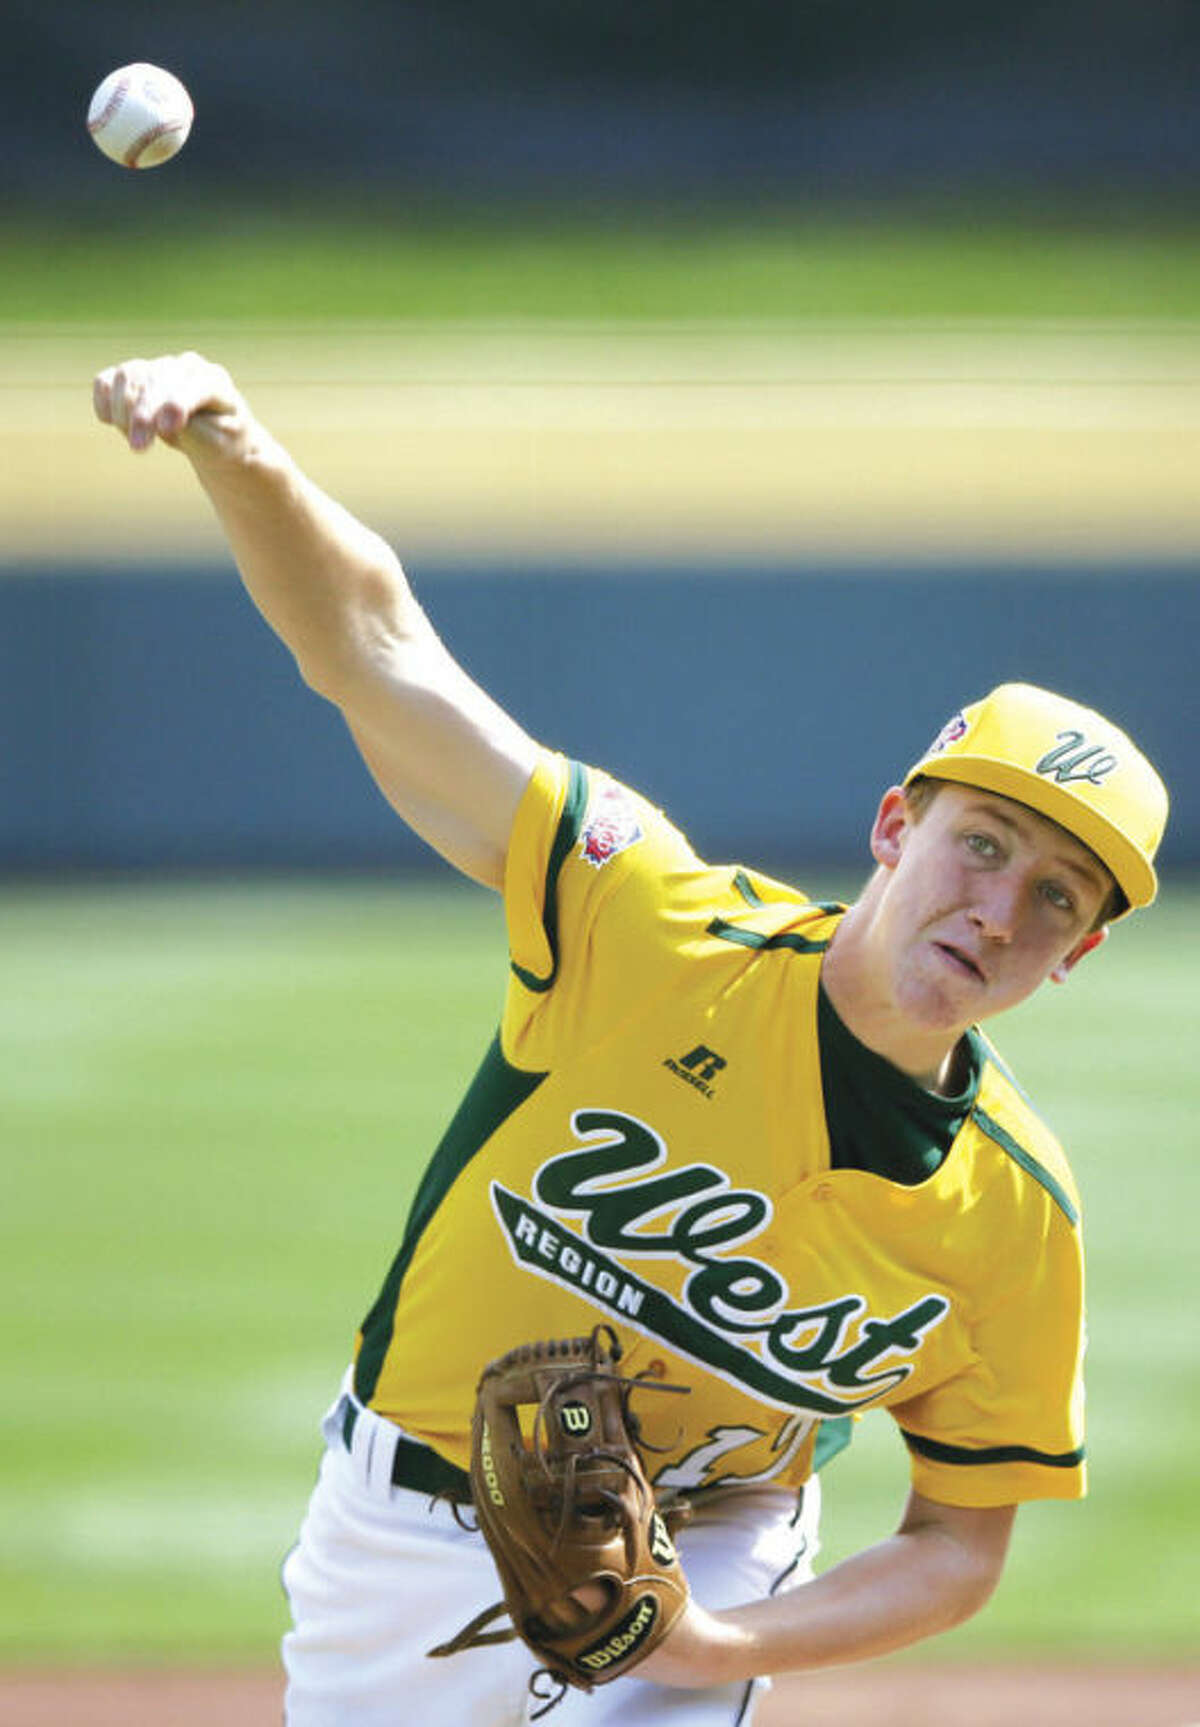 AP photo Grant Holman of Chula Vista, Cal., delivers a pitch during the second inning of his Little League World Series no-hitter against Grosse Pointe, Mich. Most observers expect Holman to square off against Westport ace Chad Knight in Wednesday night's winners bracket final.